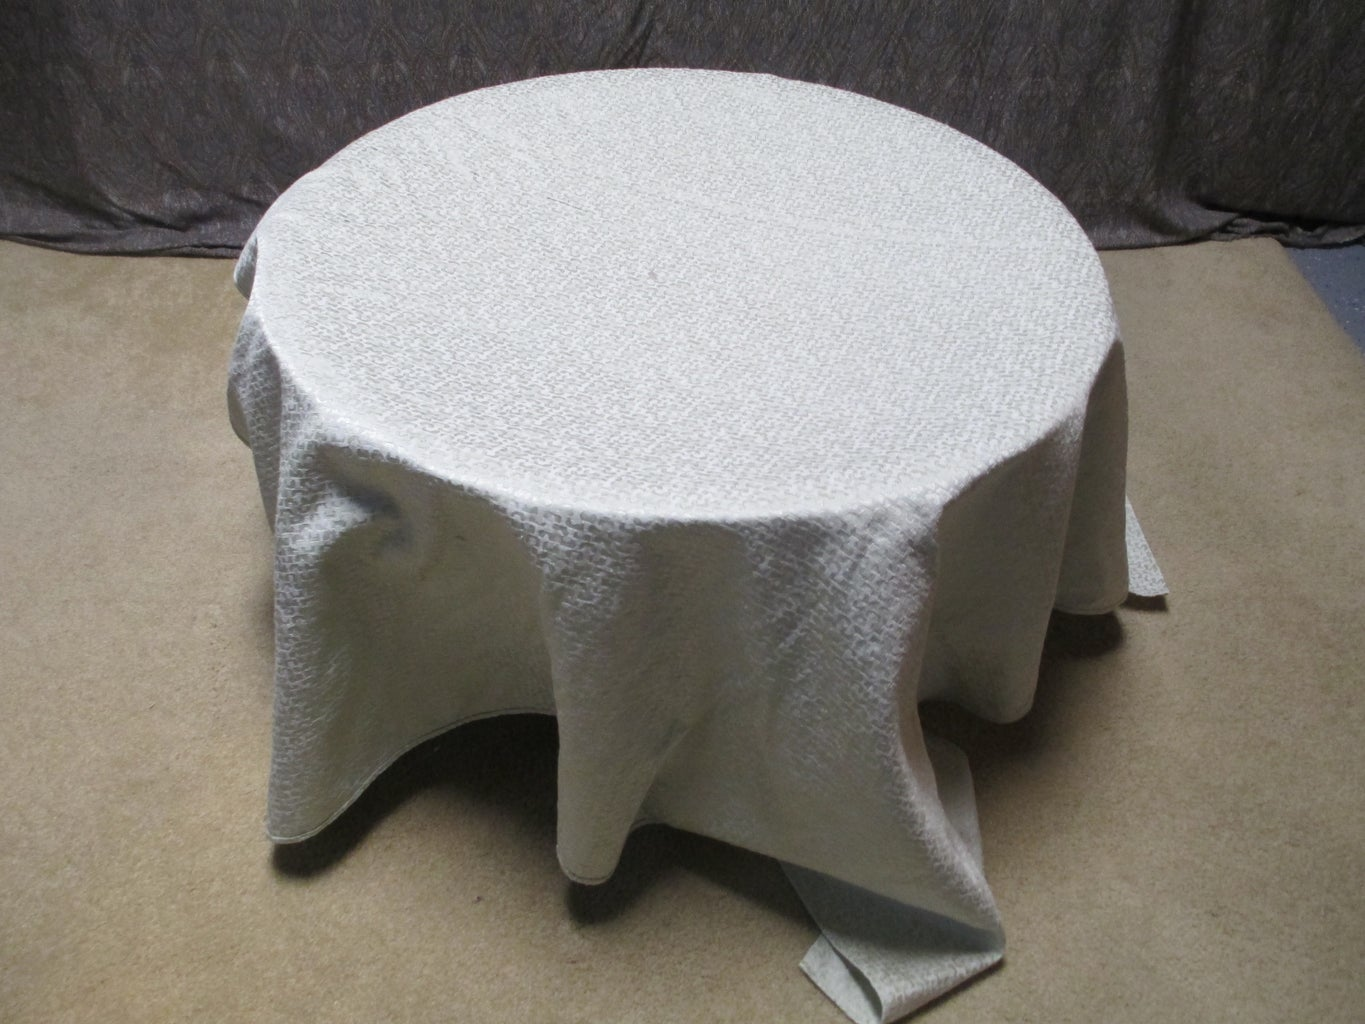 Place a Large Piece of Fabric Over the Top.